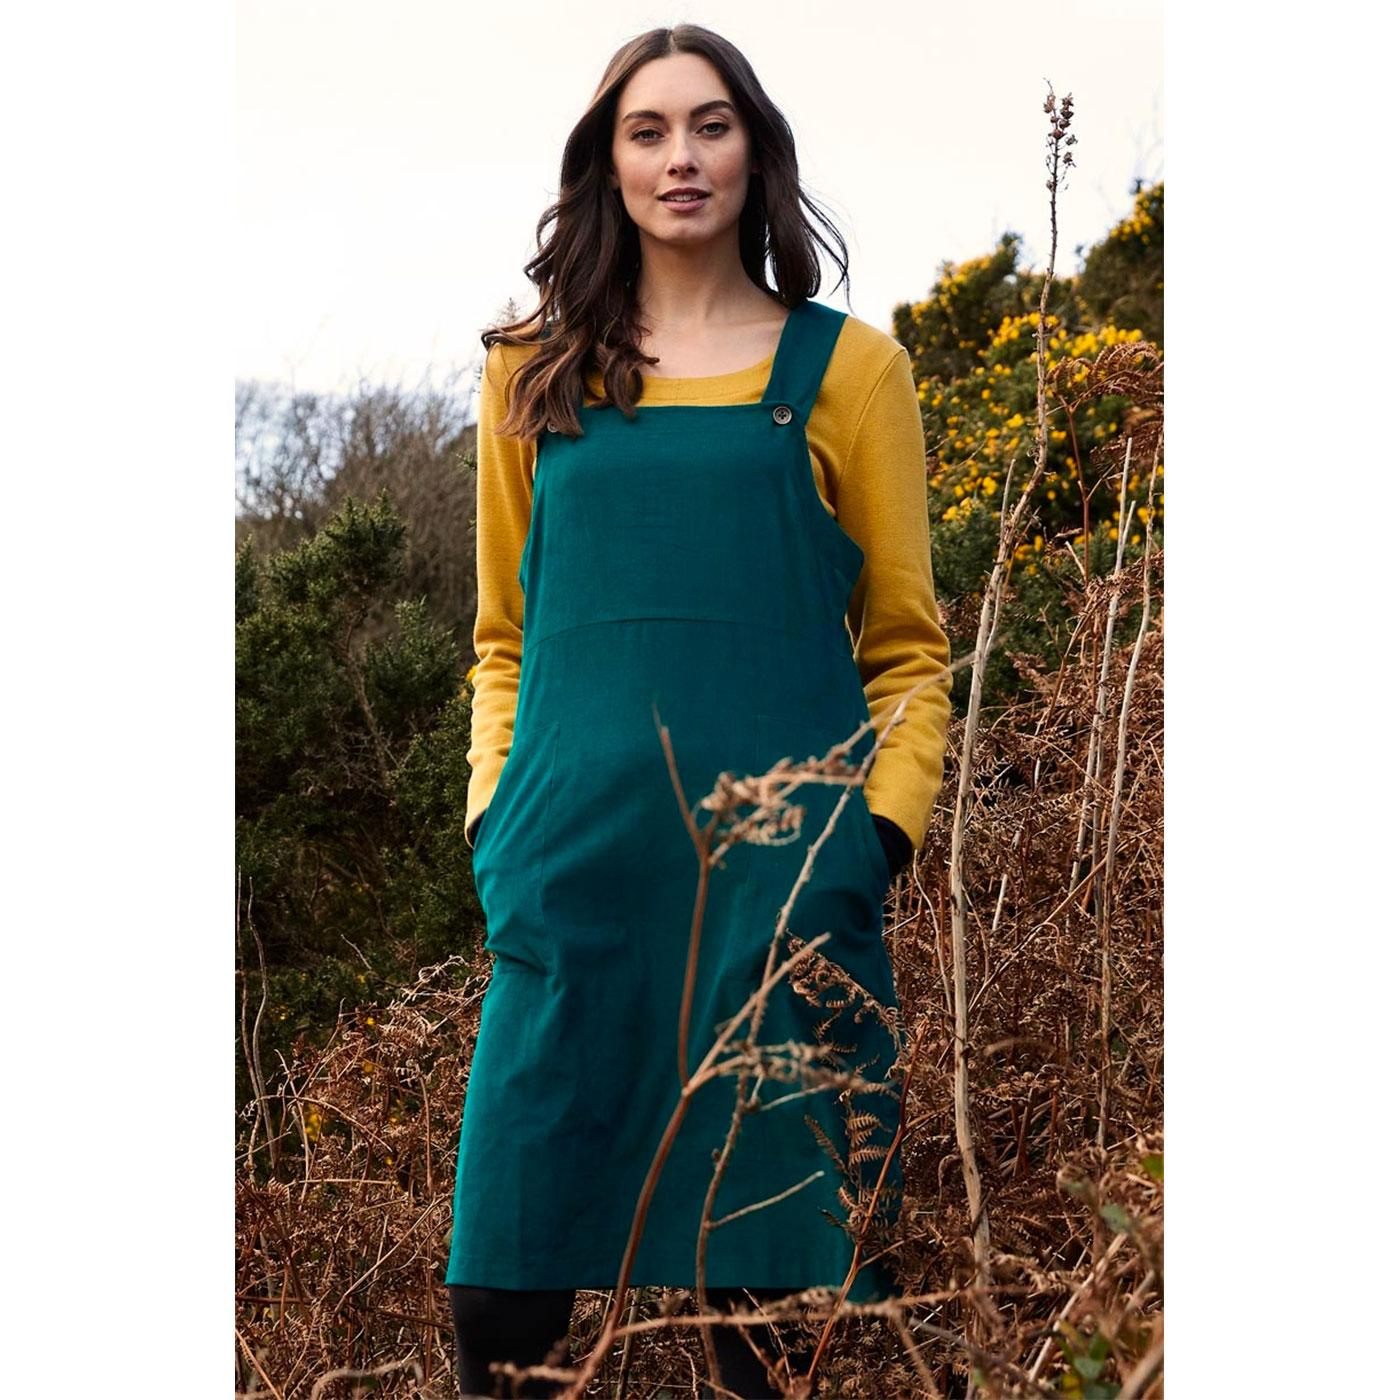 NOMADS Retro 70s Cord Dungaree Dress in Peacock